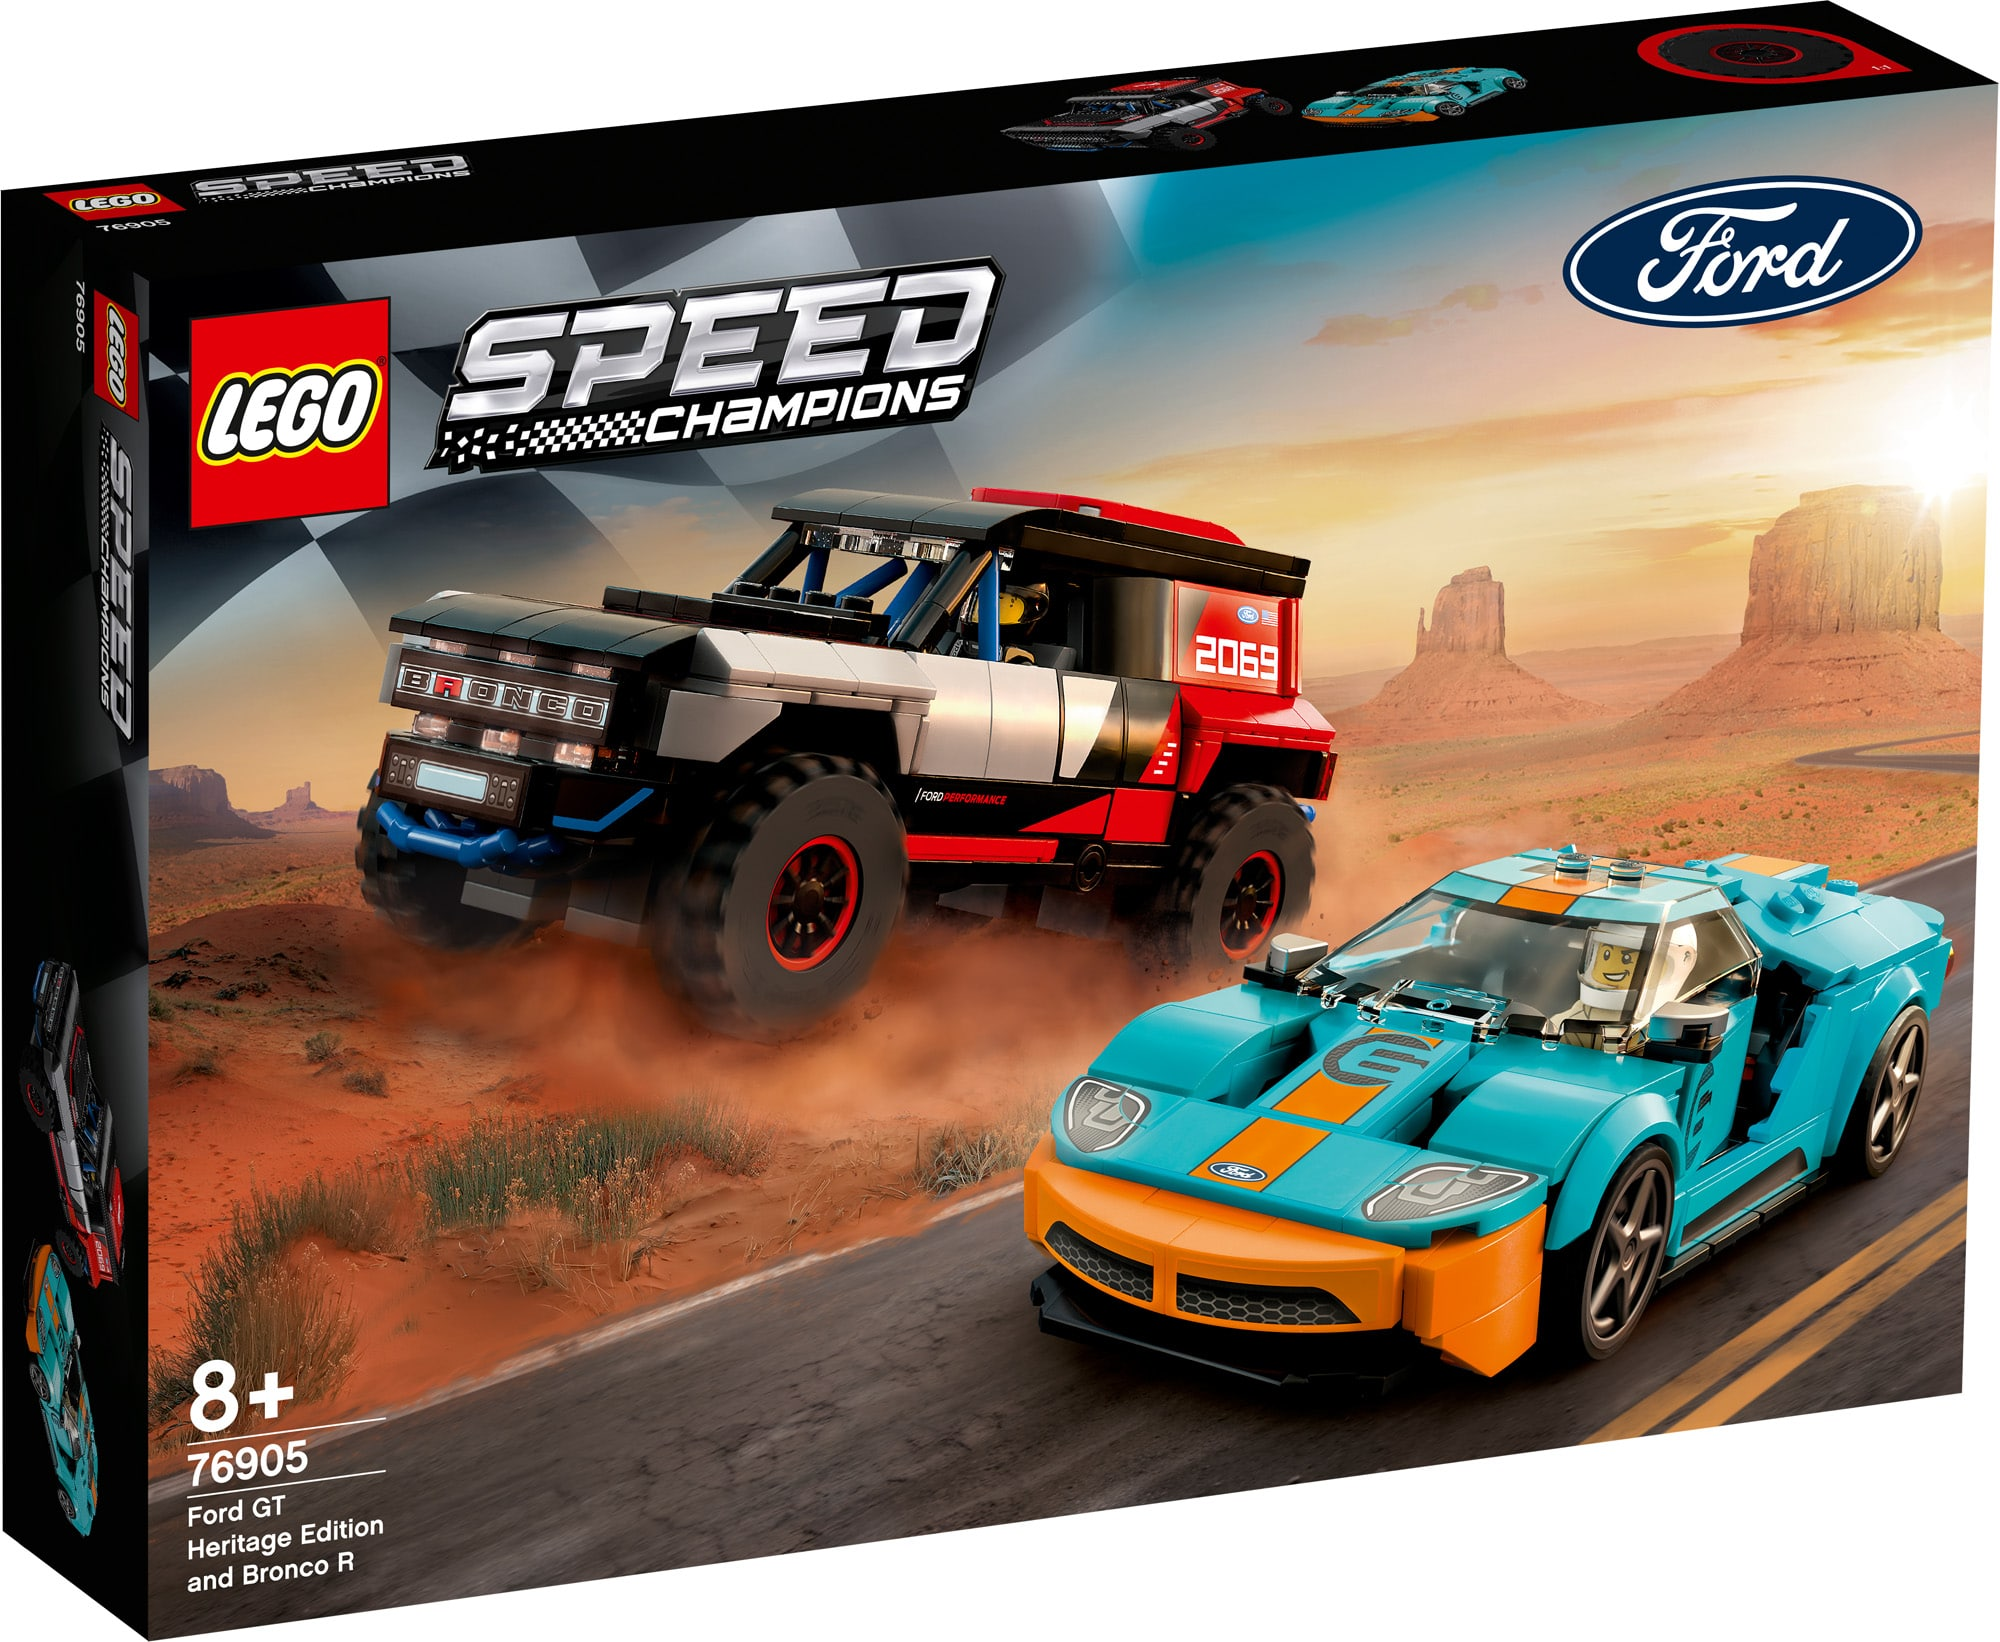 LEGO Speed Champions 76905 Ford 1